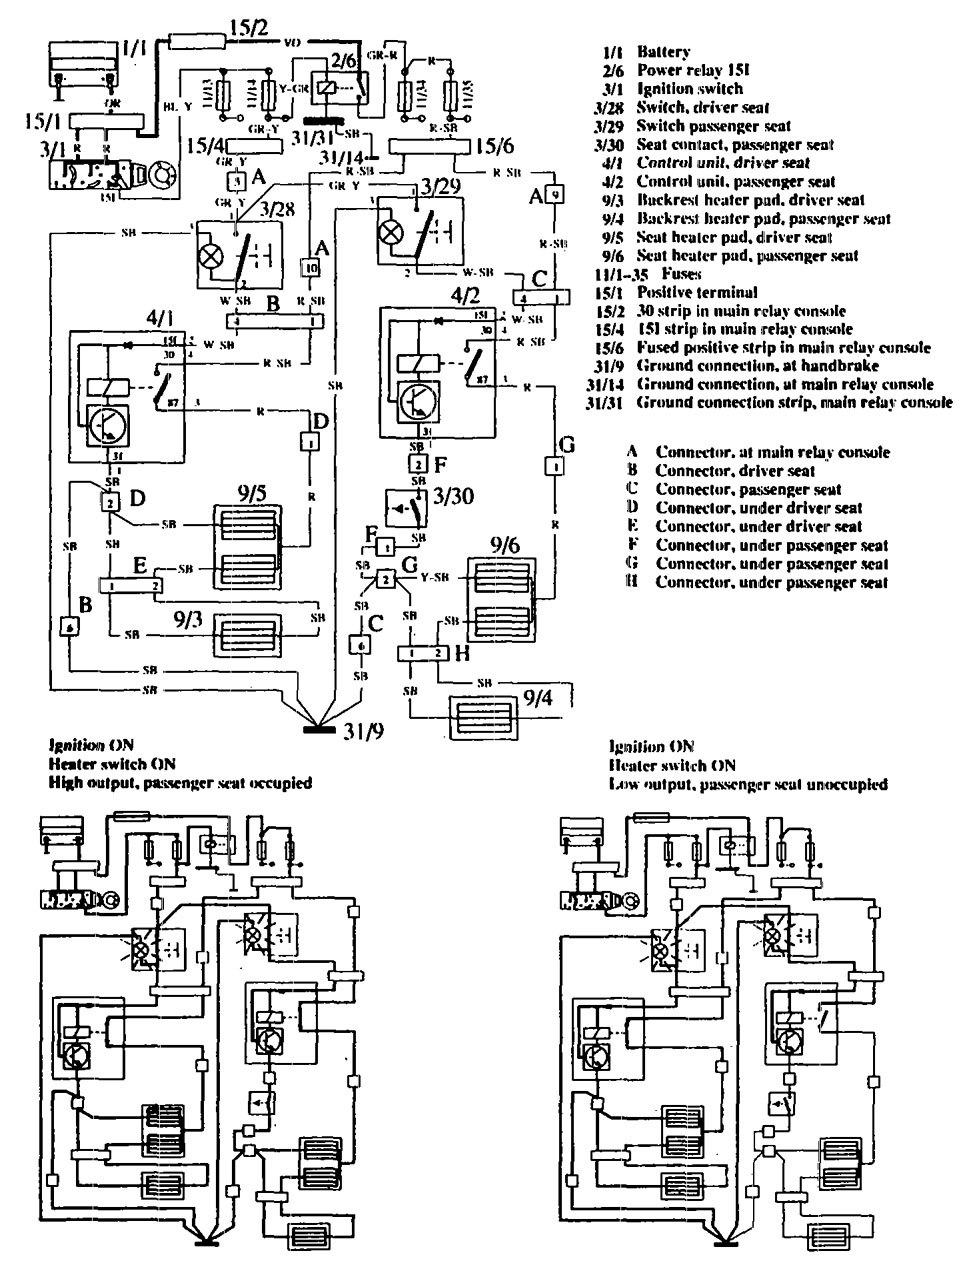 98 volvo s90 engine diagram